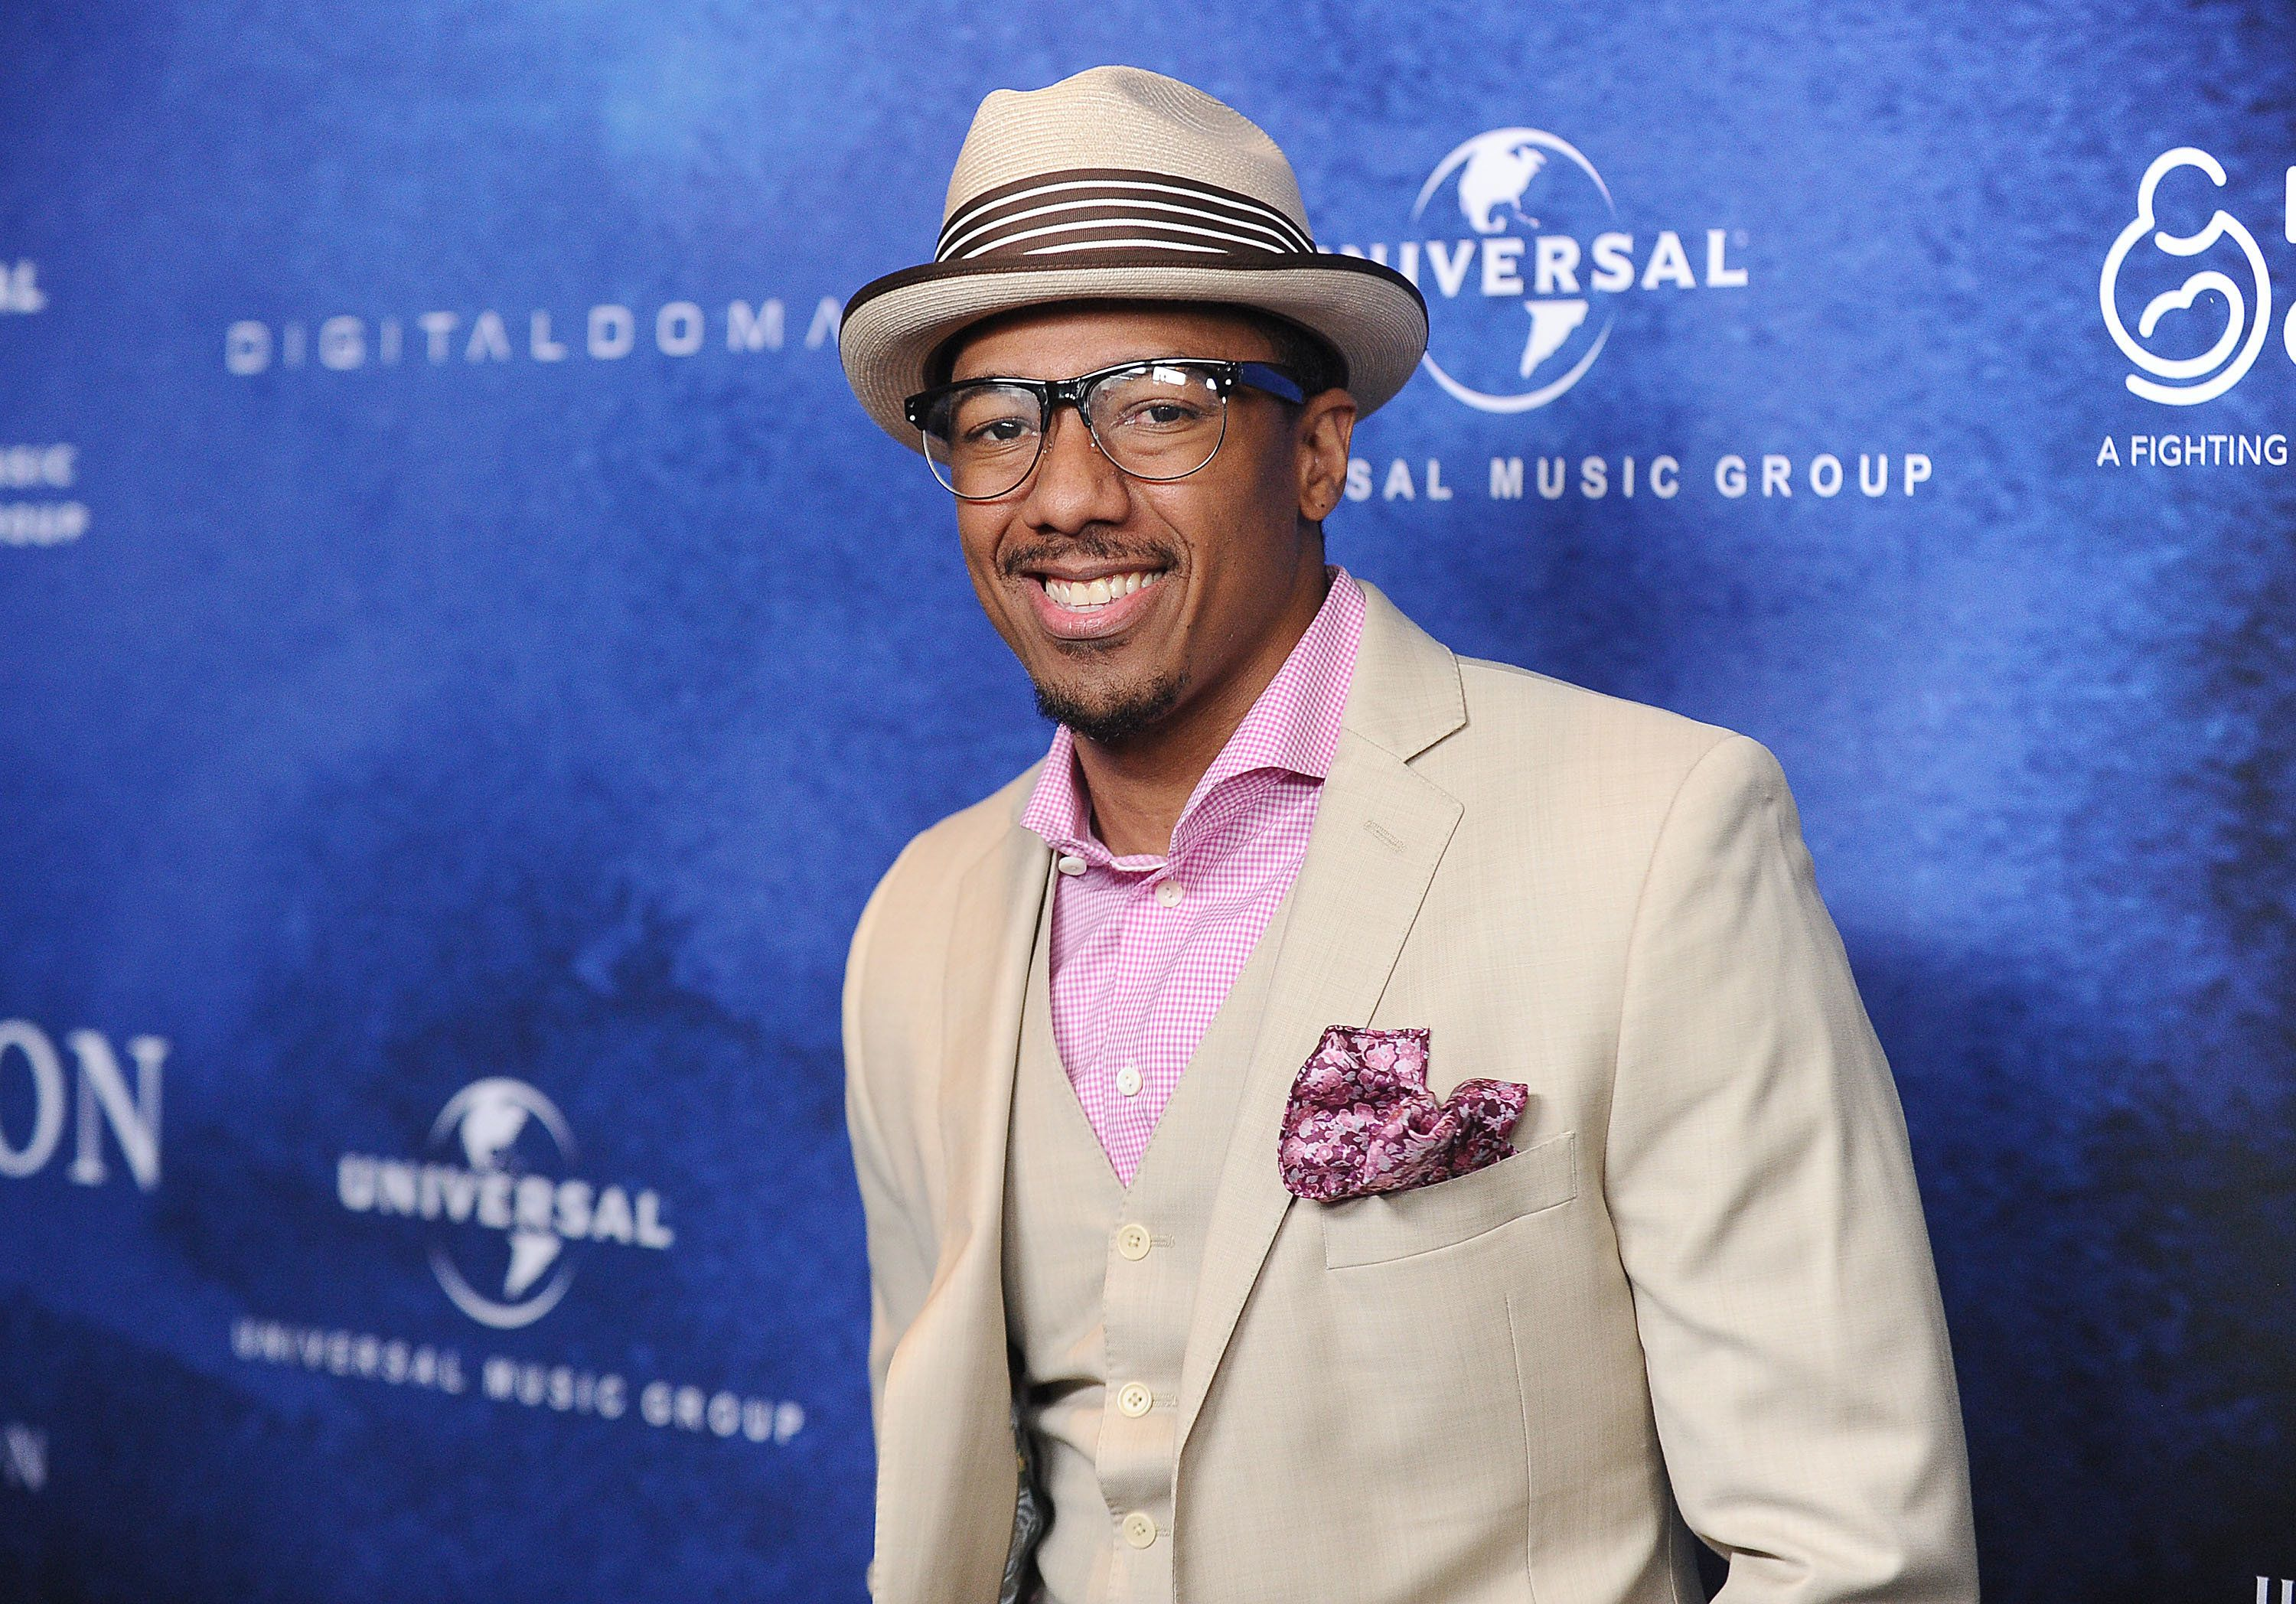 BEVERLY HILLS, CA - DECEMBER 09:  Nick Cannon attends the 2016 March of Dimes Celebration of Babies at the Beverly Wilshire Four Seasons Hotel on December 9, 2016 in Beverly Hills, California.  (Photo by Jason LaVeris/FilmMagic)